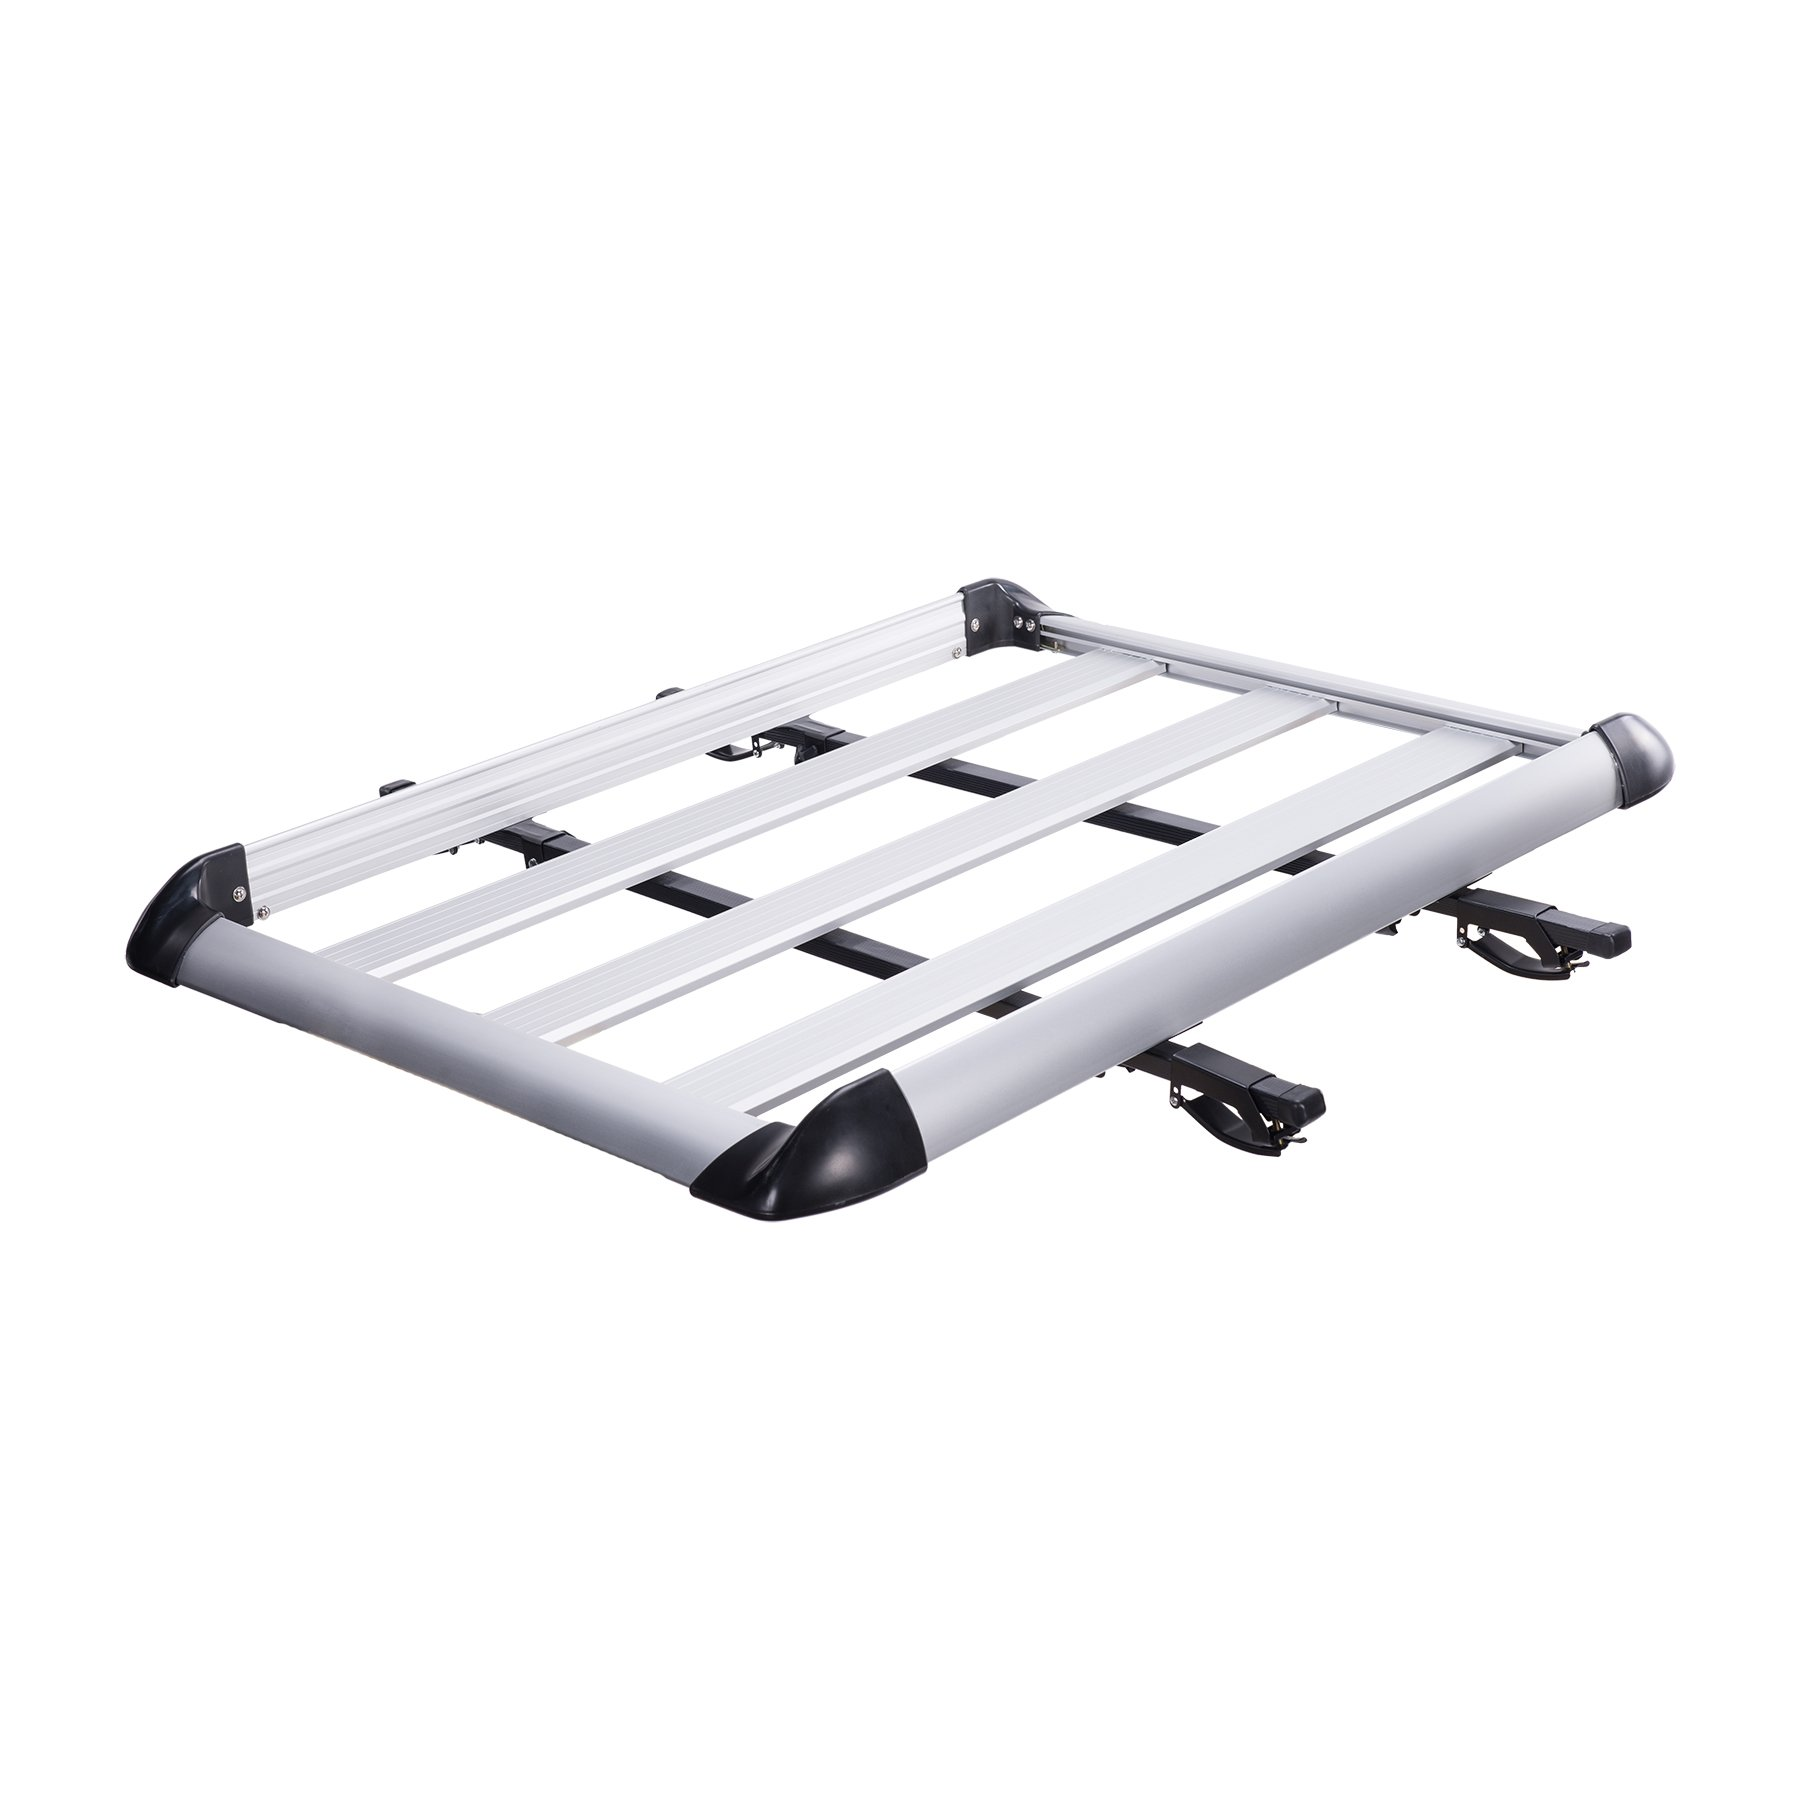 Orion Motor Tech Universal Lightweight Aluminum Roof Rack Cargo Luggage Basket Carrier with Crossbars, 441 Lb. Capacity (50'' x 38'')